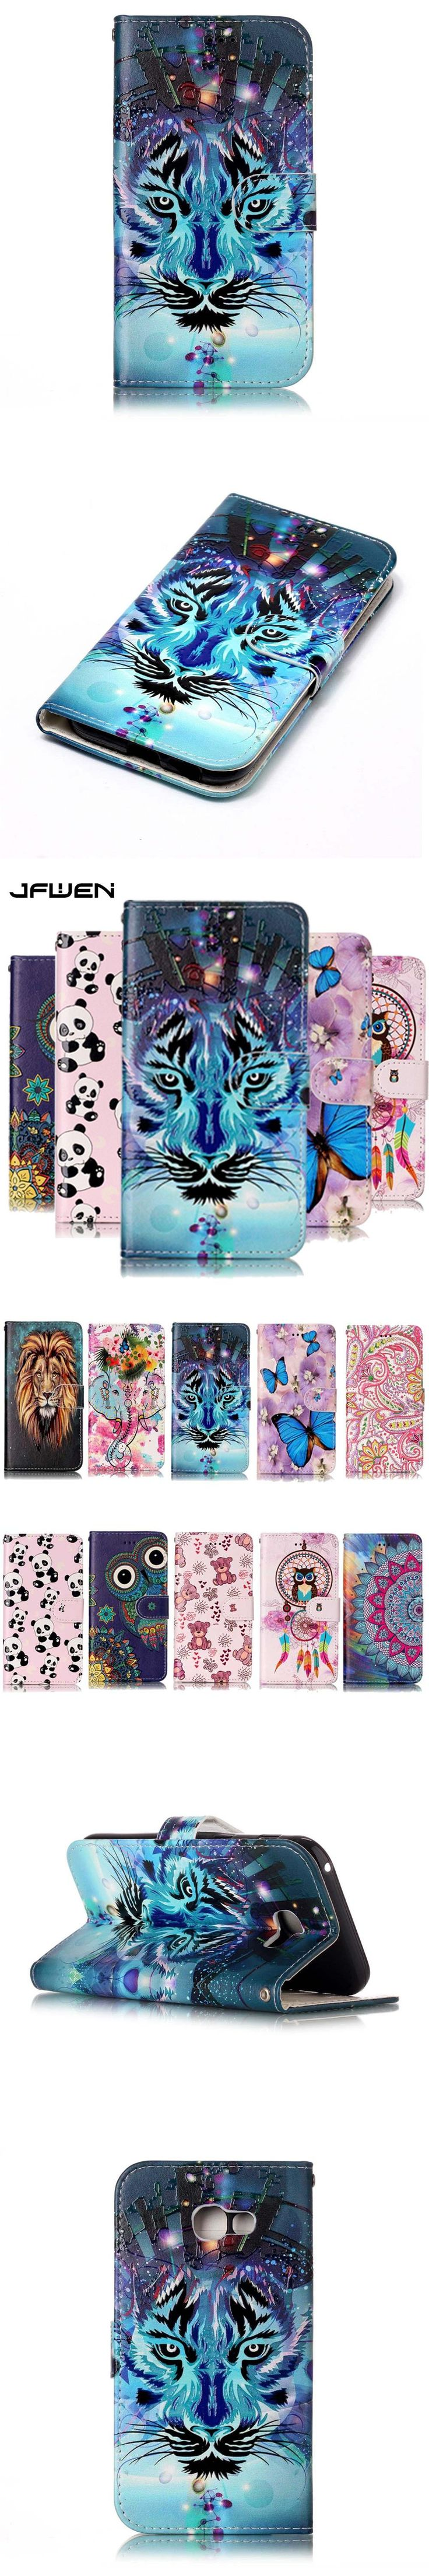 JFWEN For Samsung Galaxy A5 2017 Case Wallet Luxury PU Leather Magnetic For Samsung Galaxy A5 2017 A520 Case Cover Phone Case